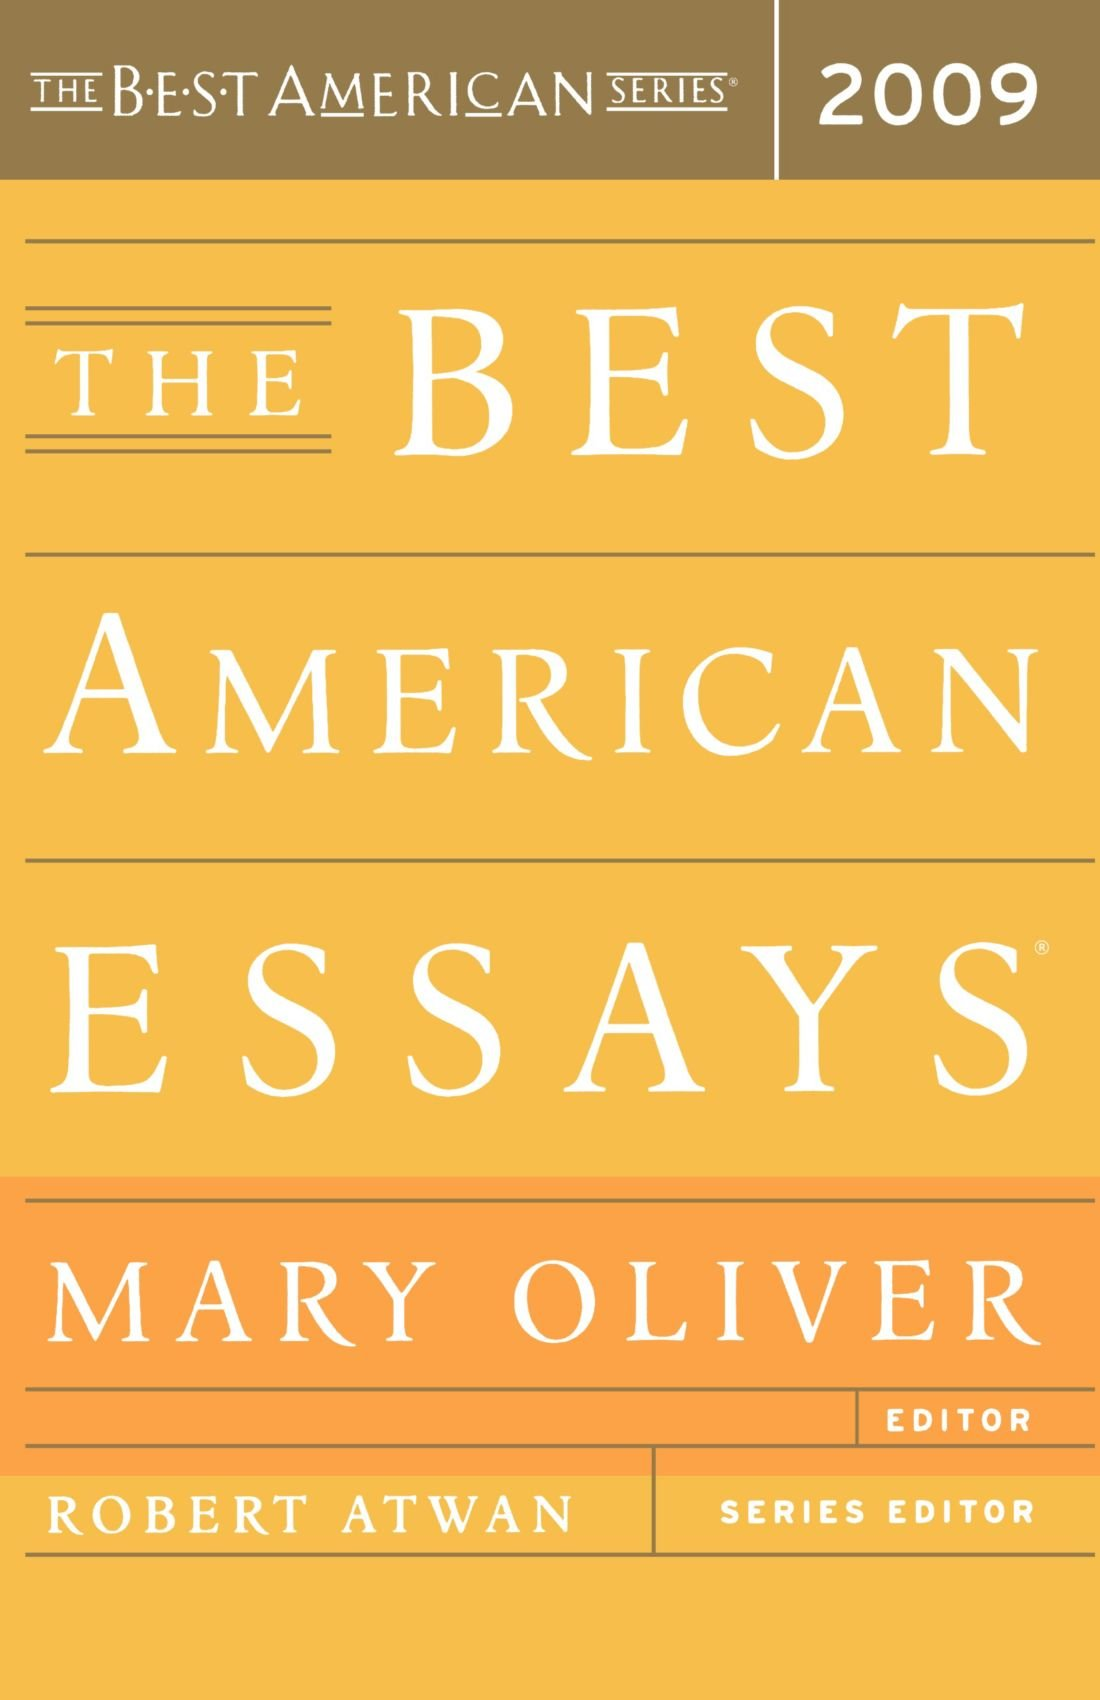 com the best american essays 2009 9780618982721 mary  com the best american essays 2009 9780618982721 mary oliver robert atwan books